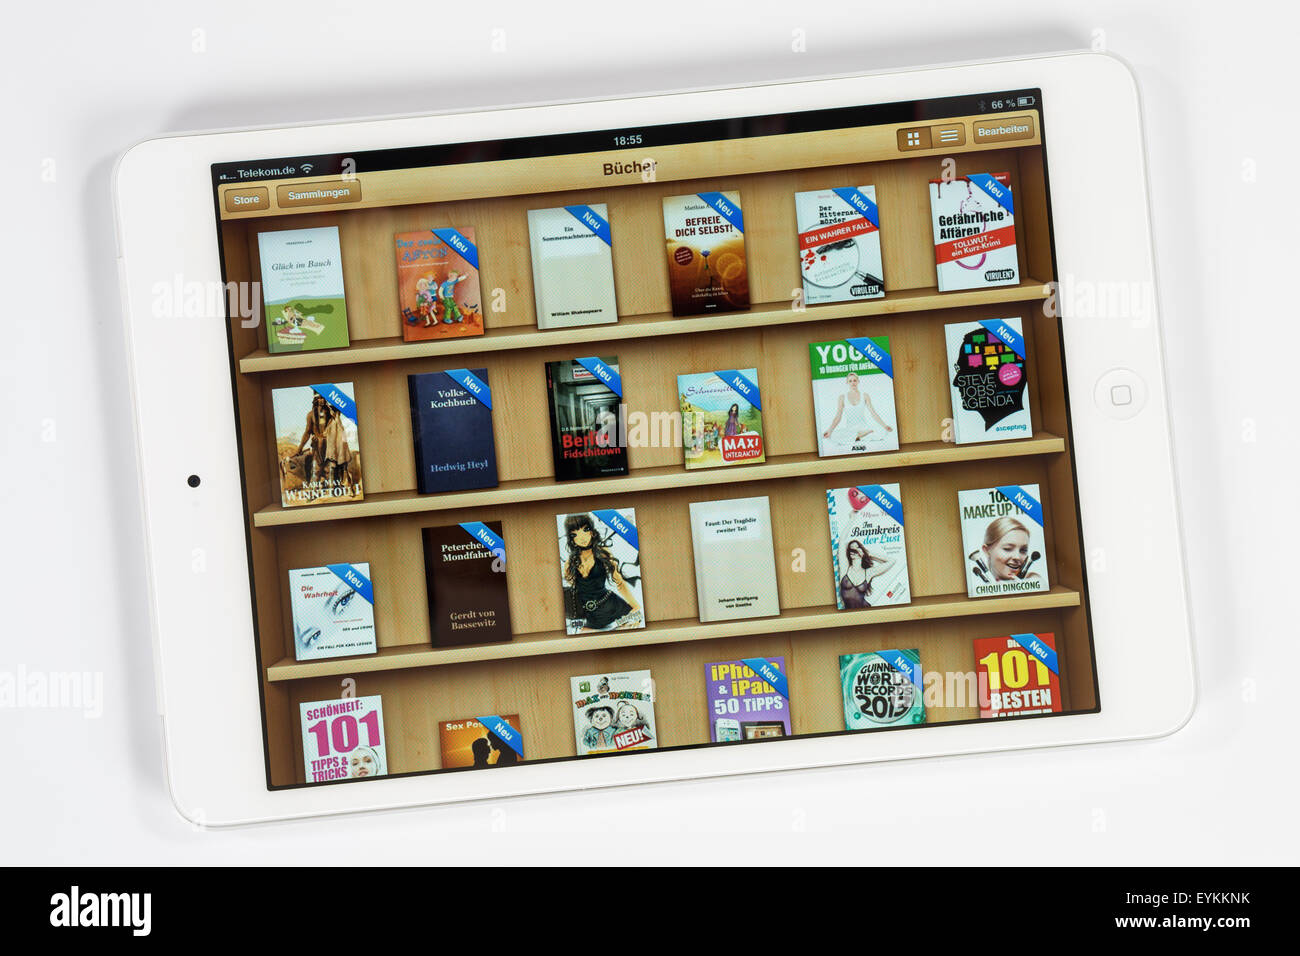 Apple iPad mini, l'affichage, les livres, l'iPad, poste, d'un programme multi-fonction, l'air, Photo Stock